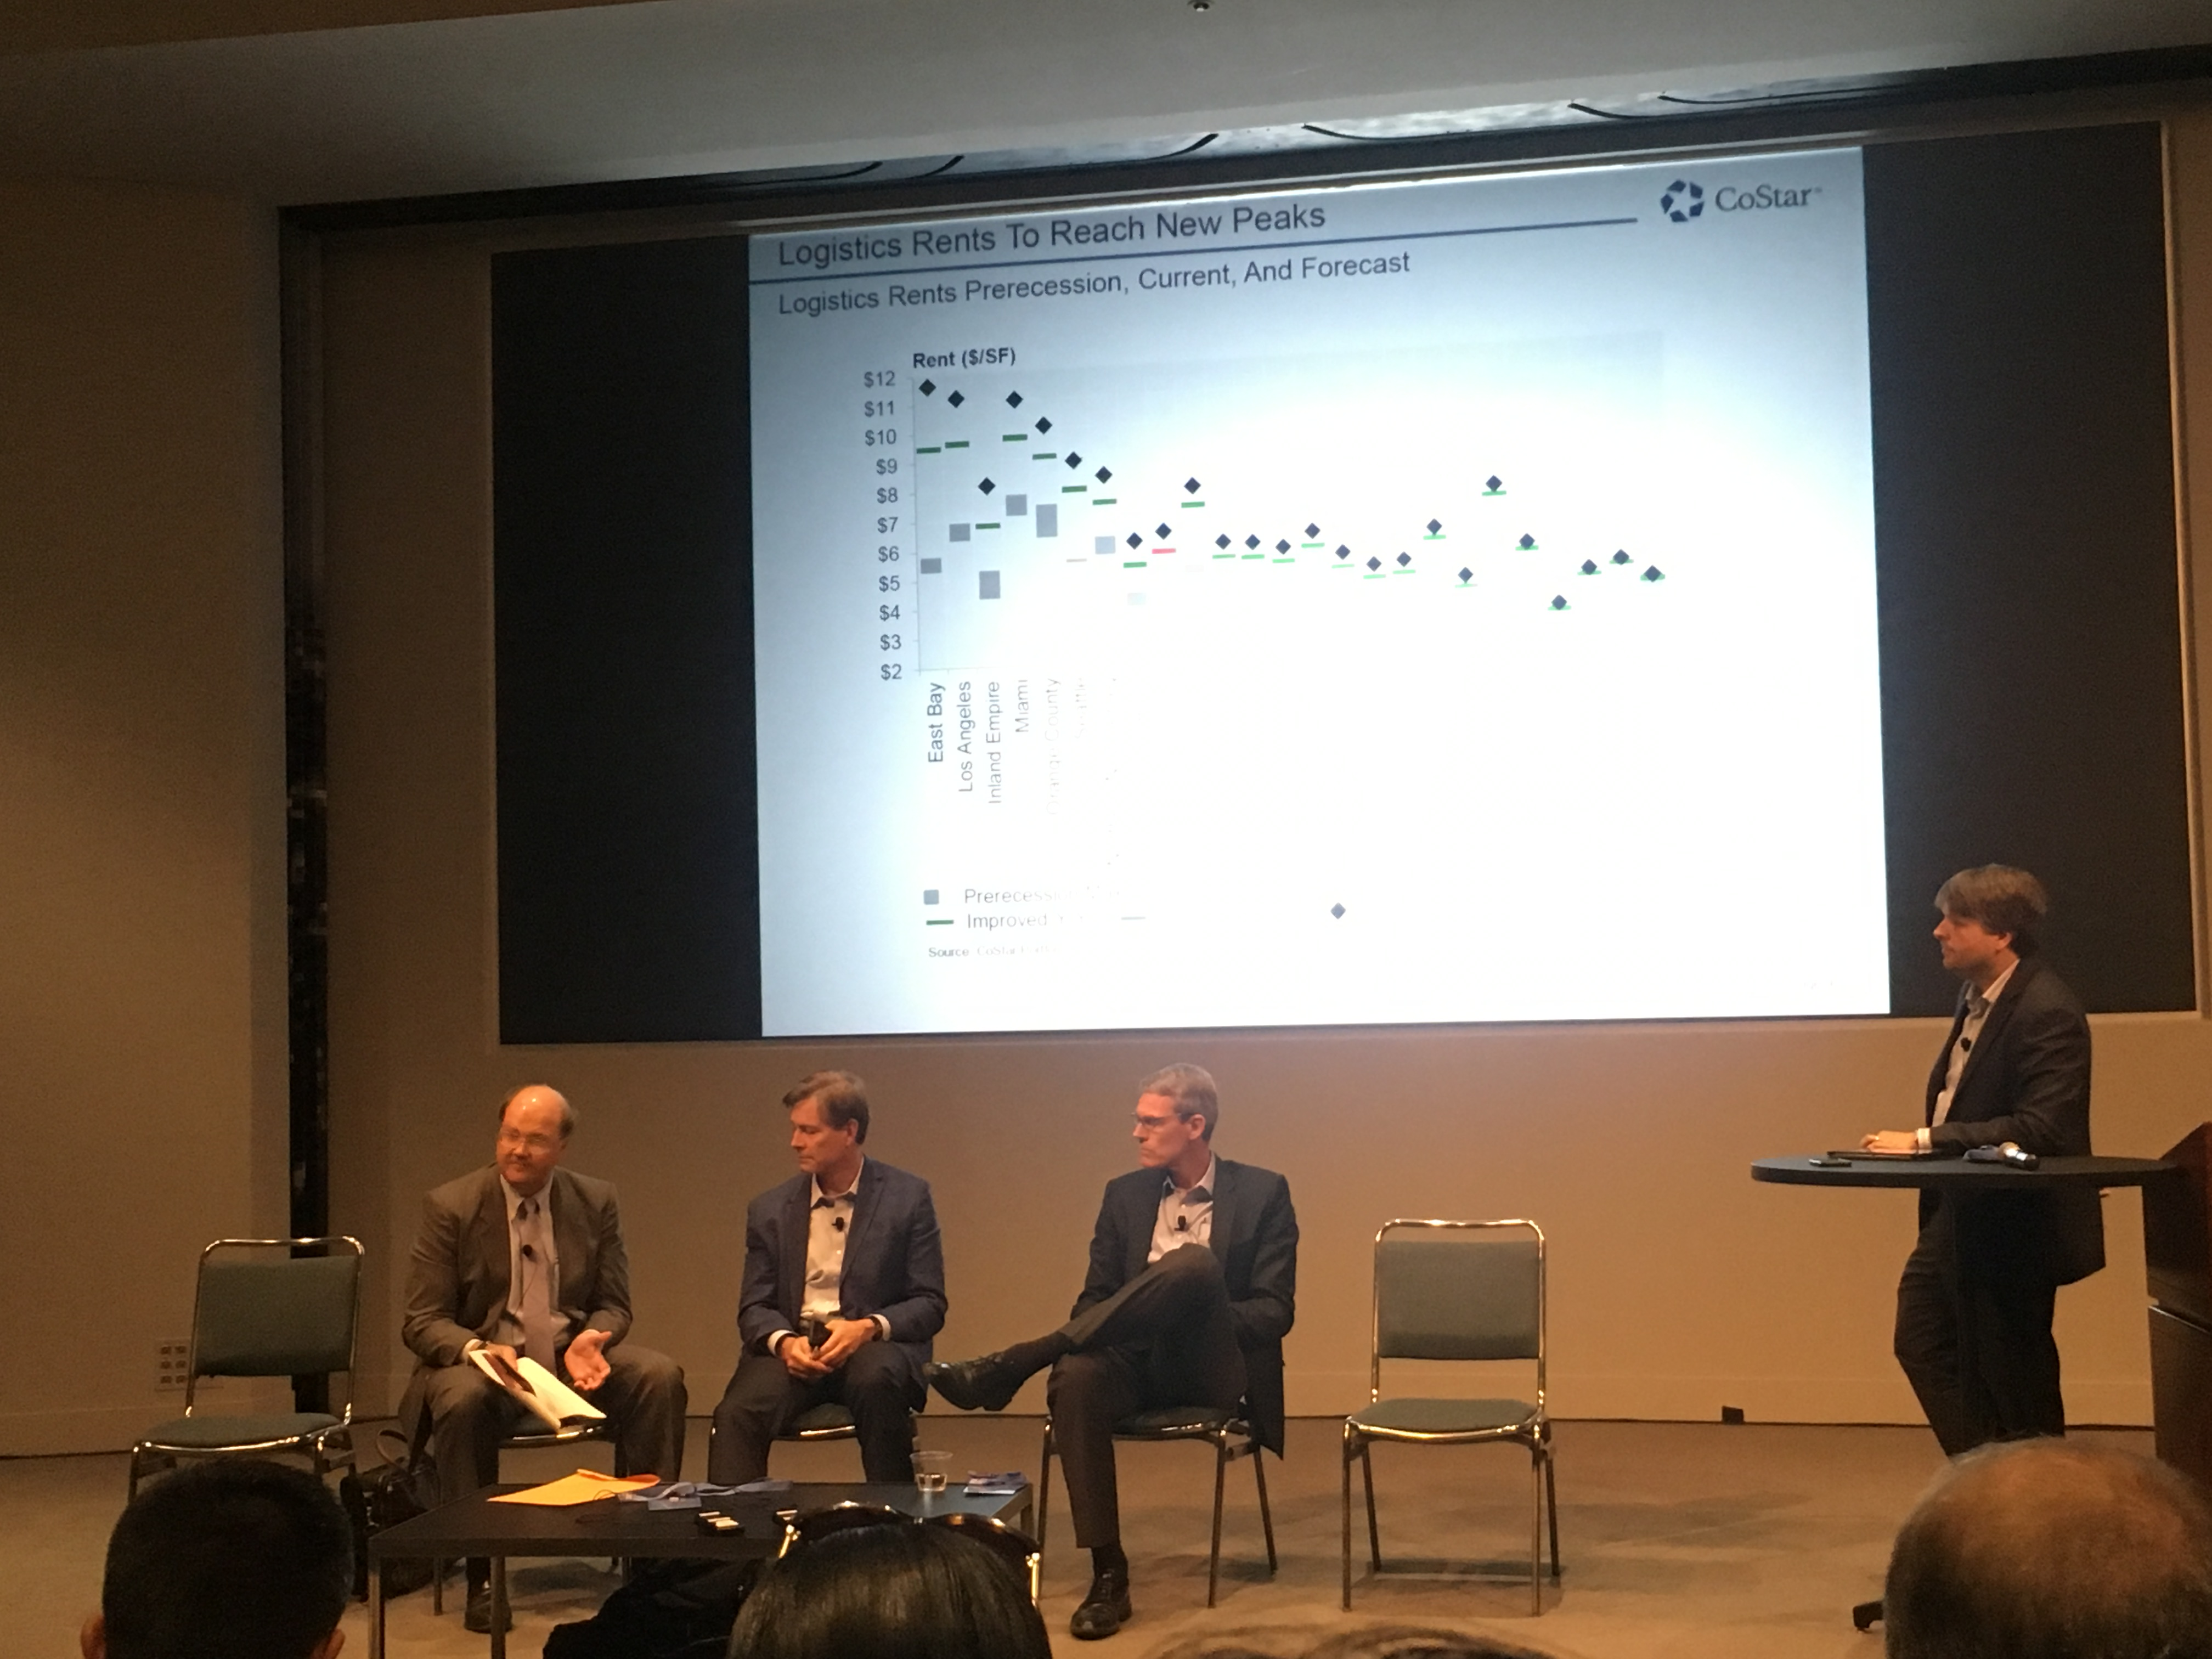 Industrial sector panel: Charles Forbes, Cabot Properties; Dwight Merriman; Industrial Property Trust; Larry Harmsen, Prologis; and Rene Circ, CoStar Portfolio Strategy